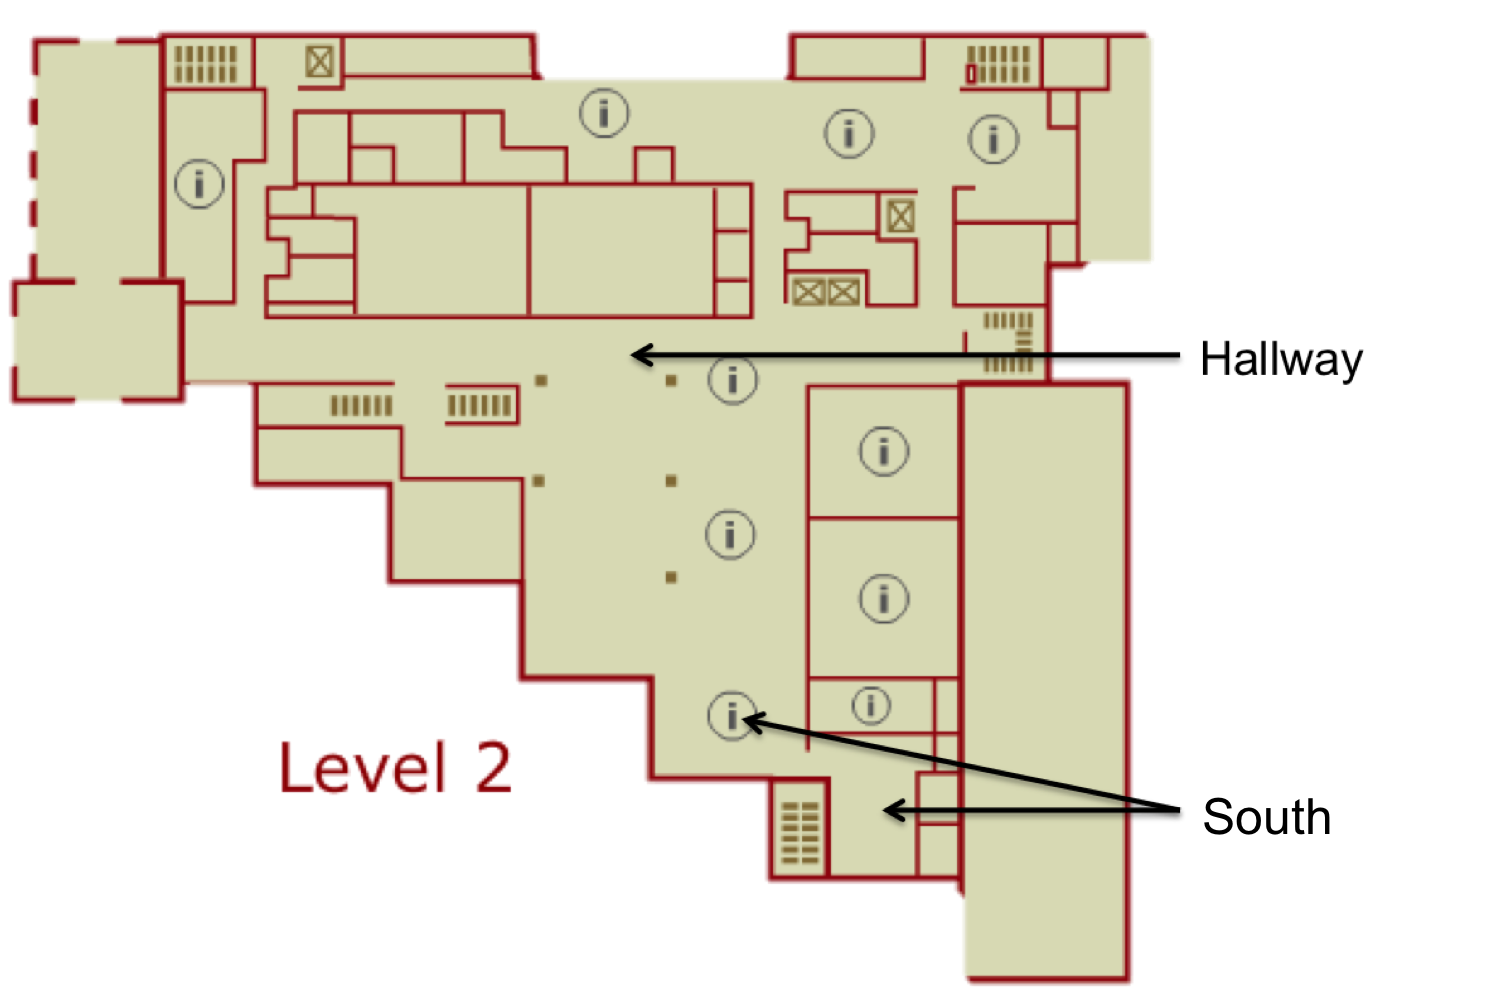 home exhibit options tour research guides at santa clara as of right now we have three exhibit spaces 2nd floor south 2nd floor hallway and the saint clare room below are the floor plans showing the general